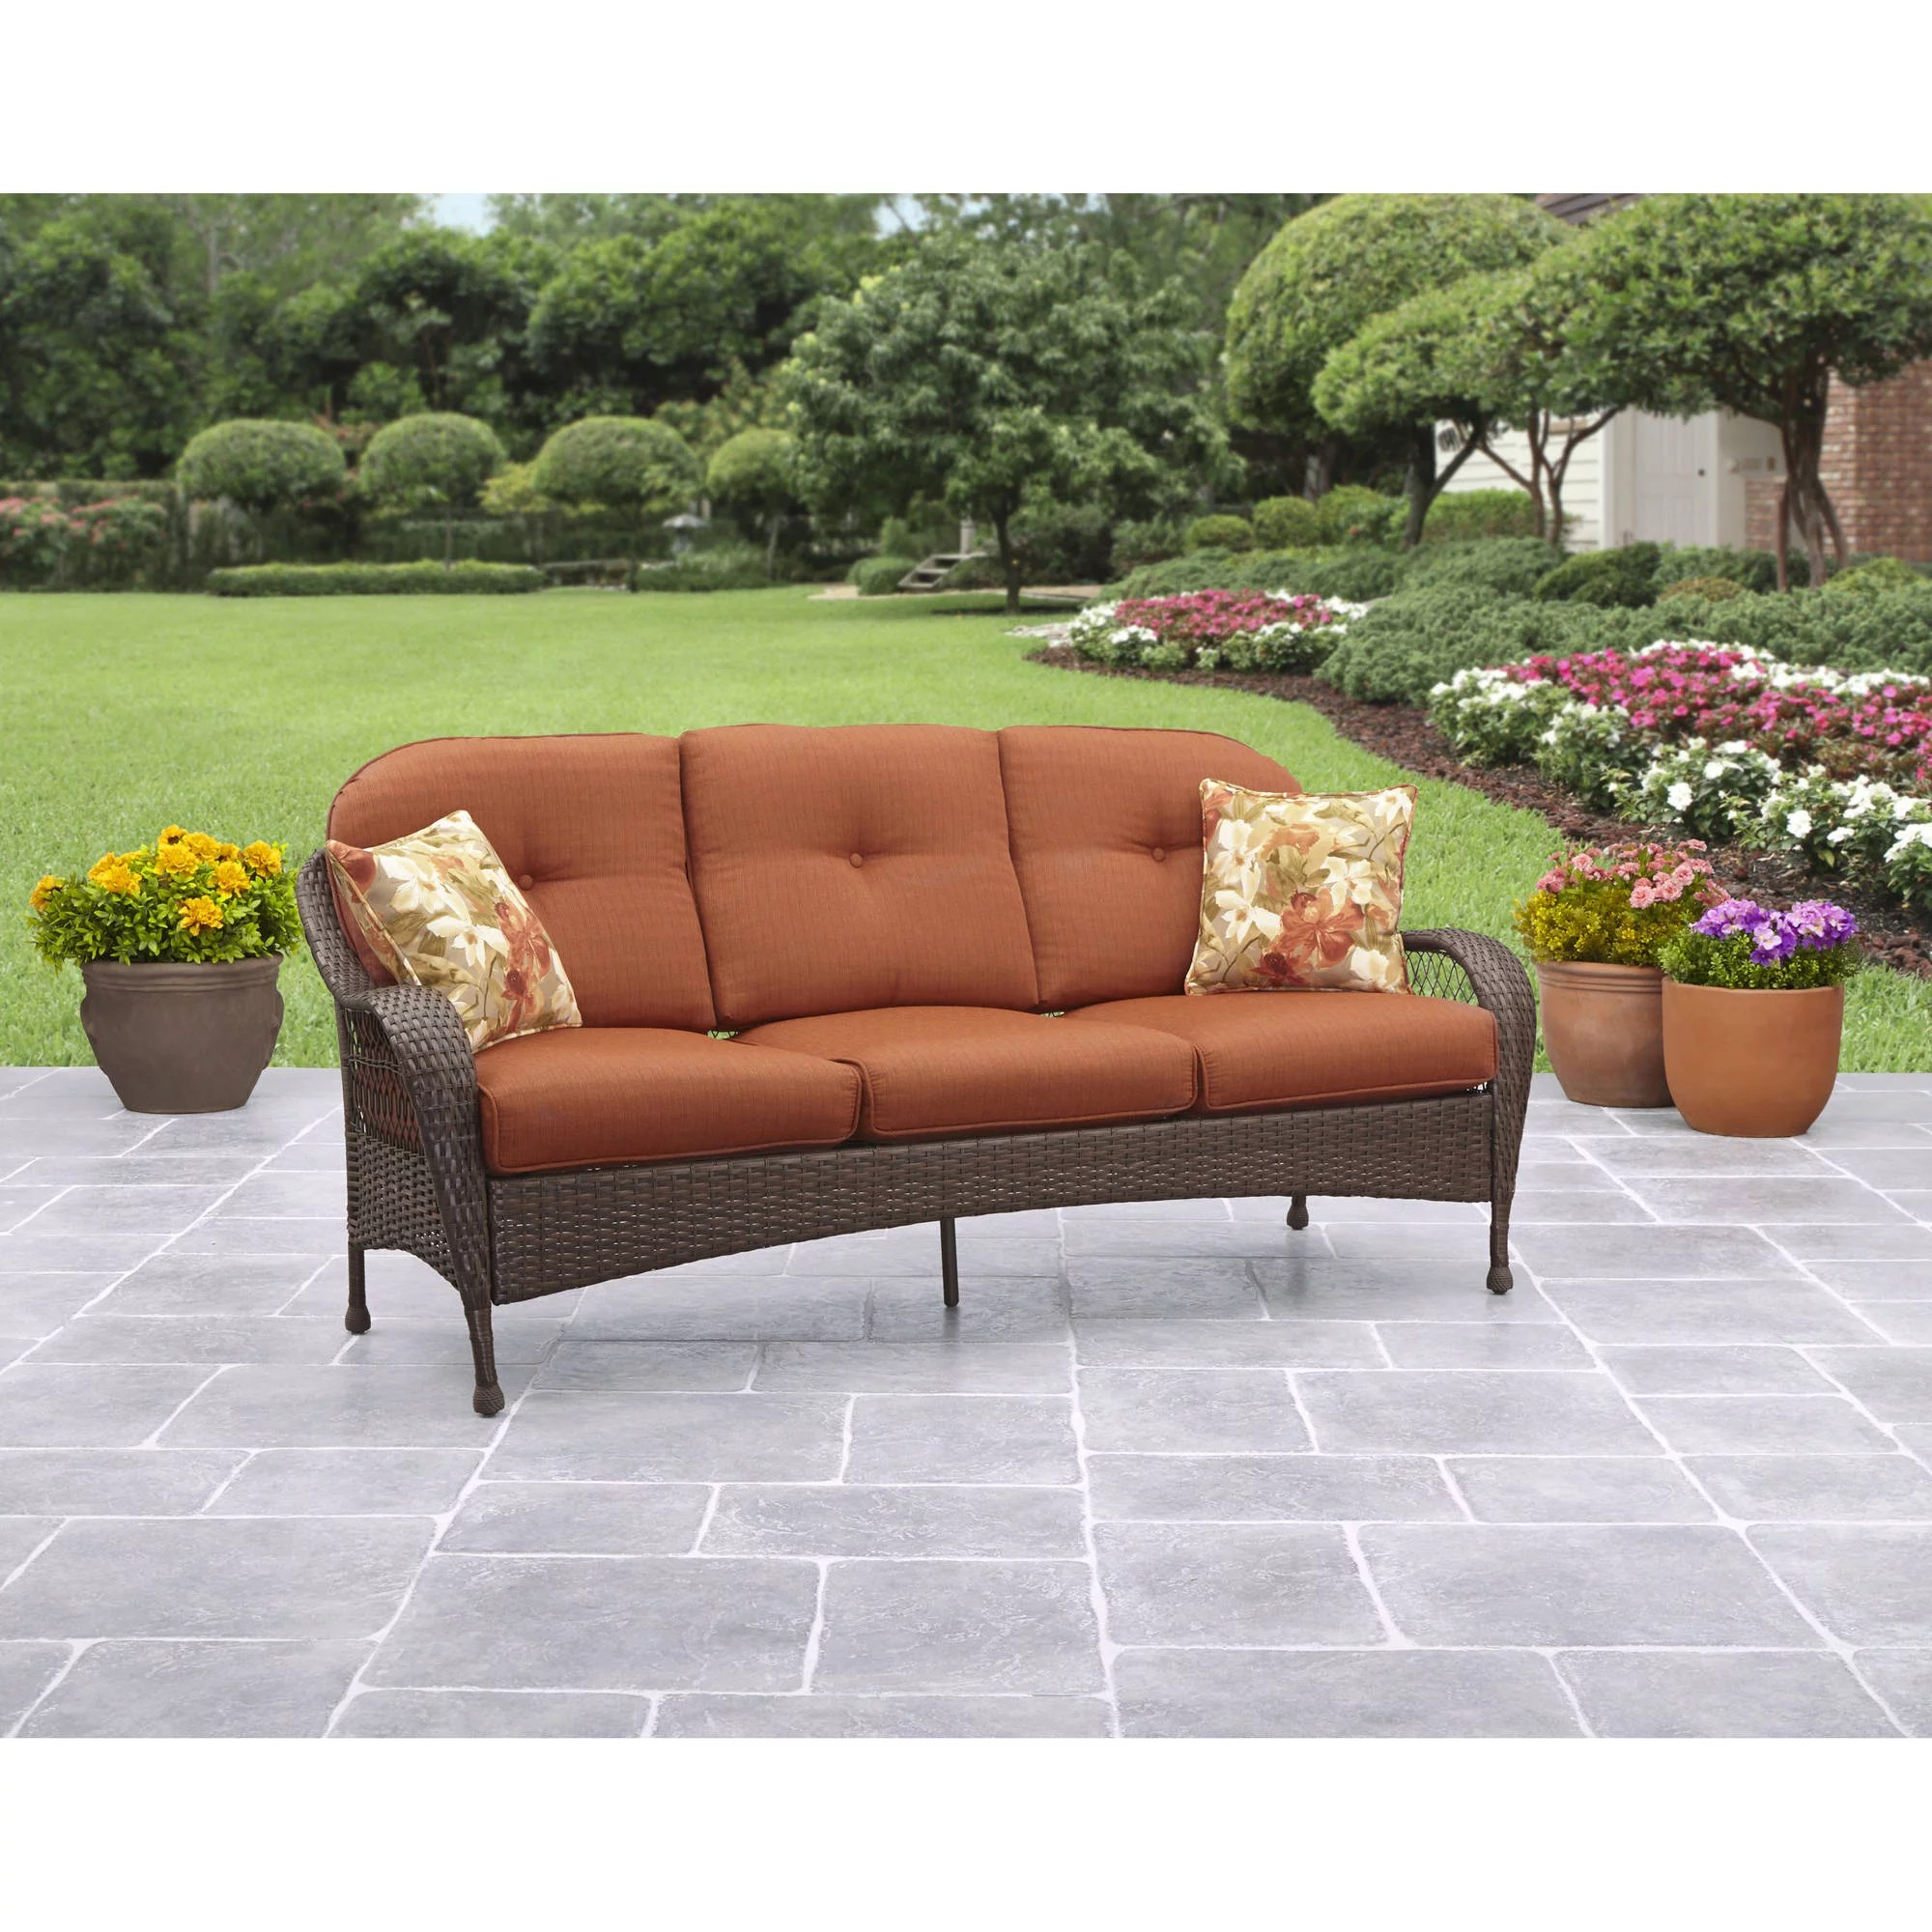 Outdoor Sofa Better Homes And Gardens Azalea Ridge Outdoor Sofa Seats 3